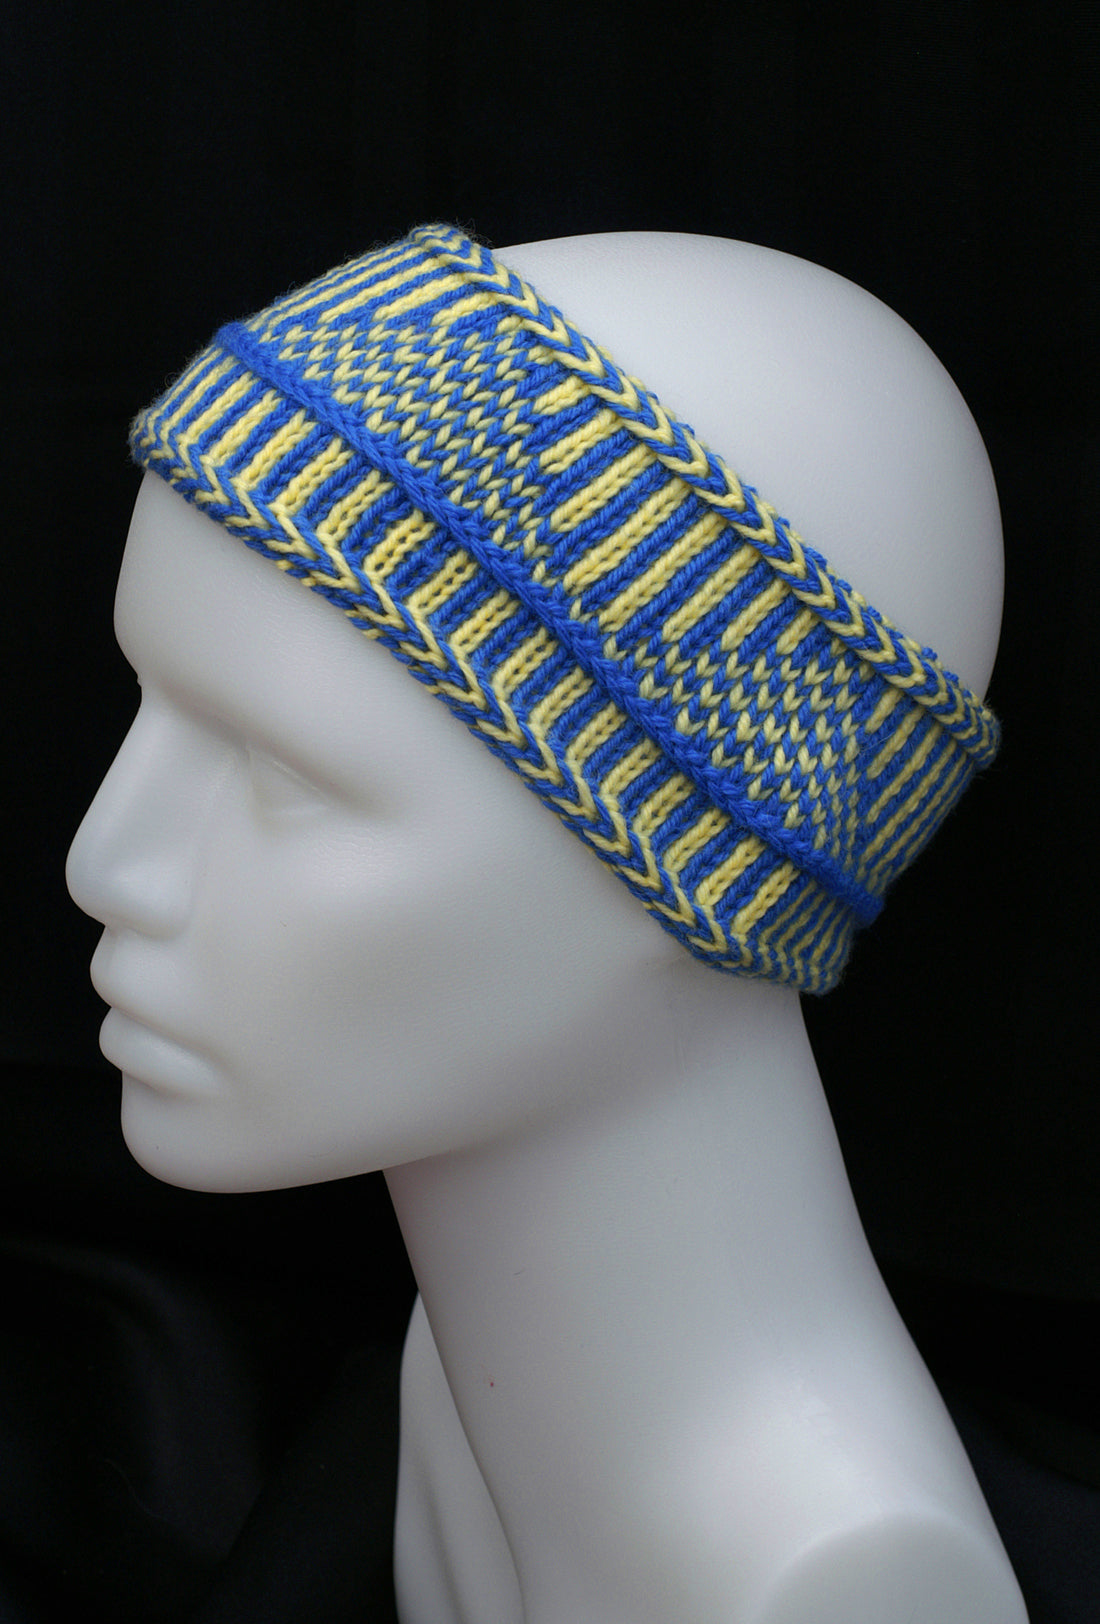 Nordic Knit Headband - 100% wool